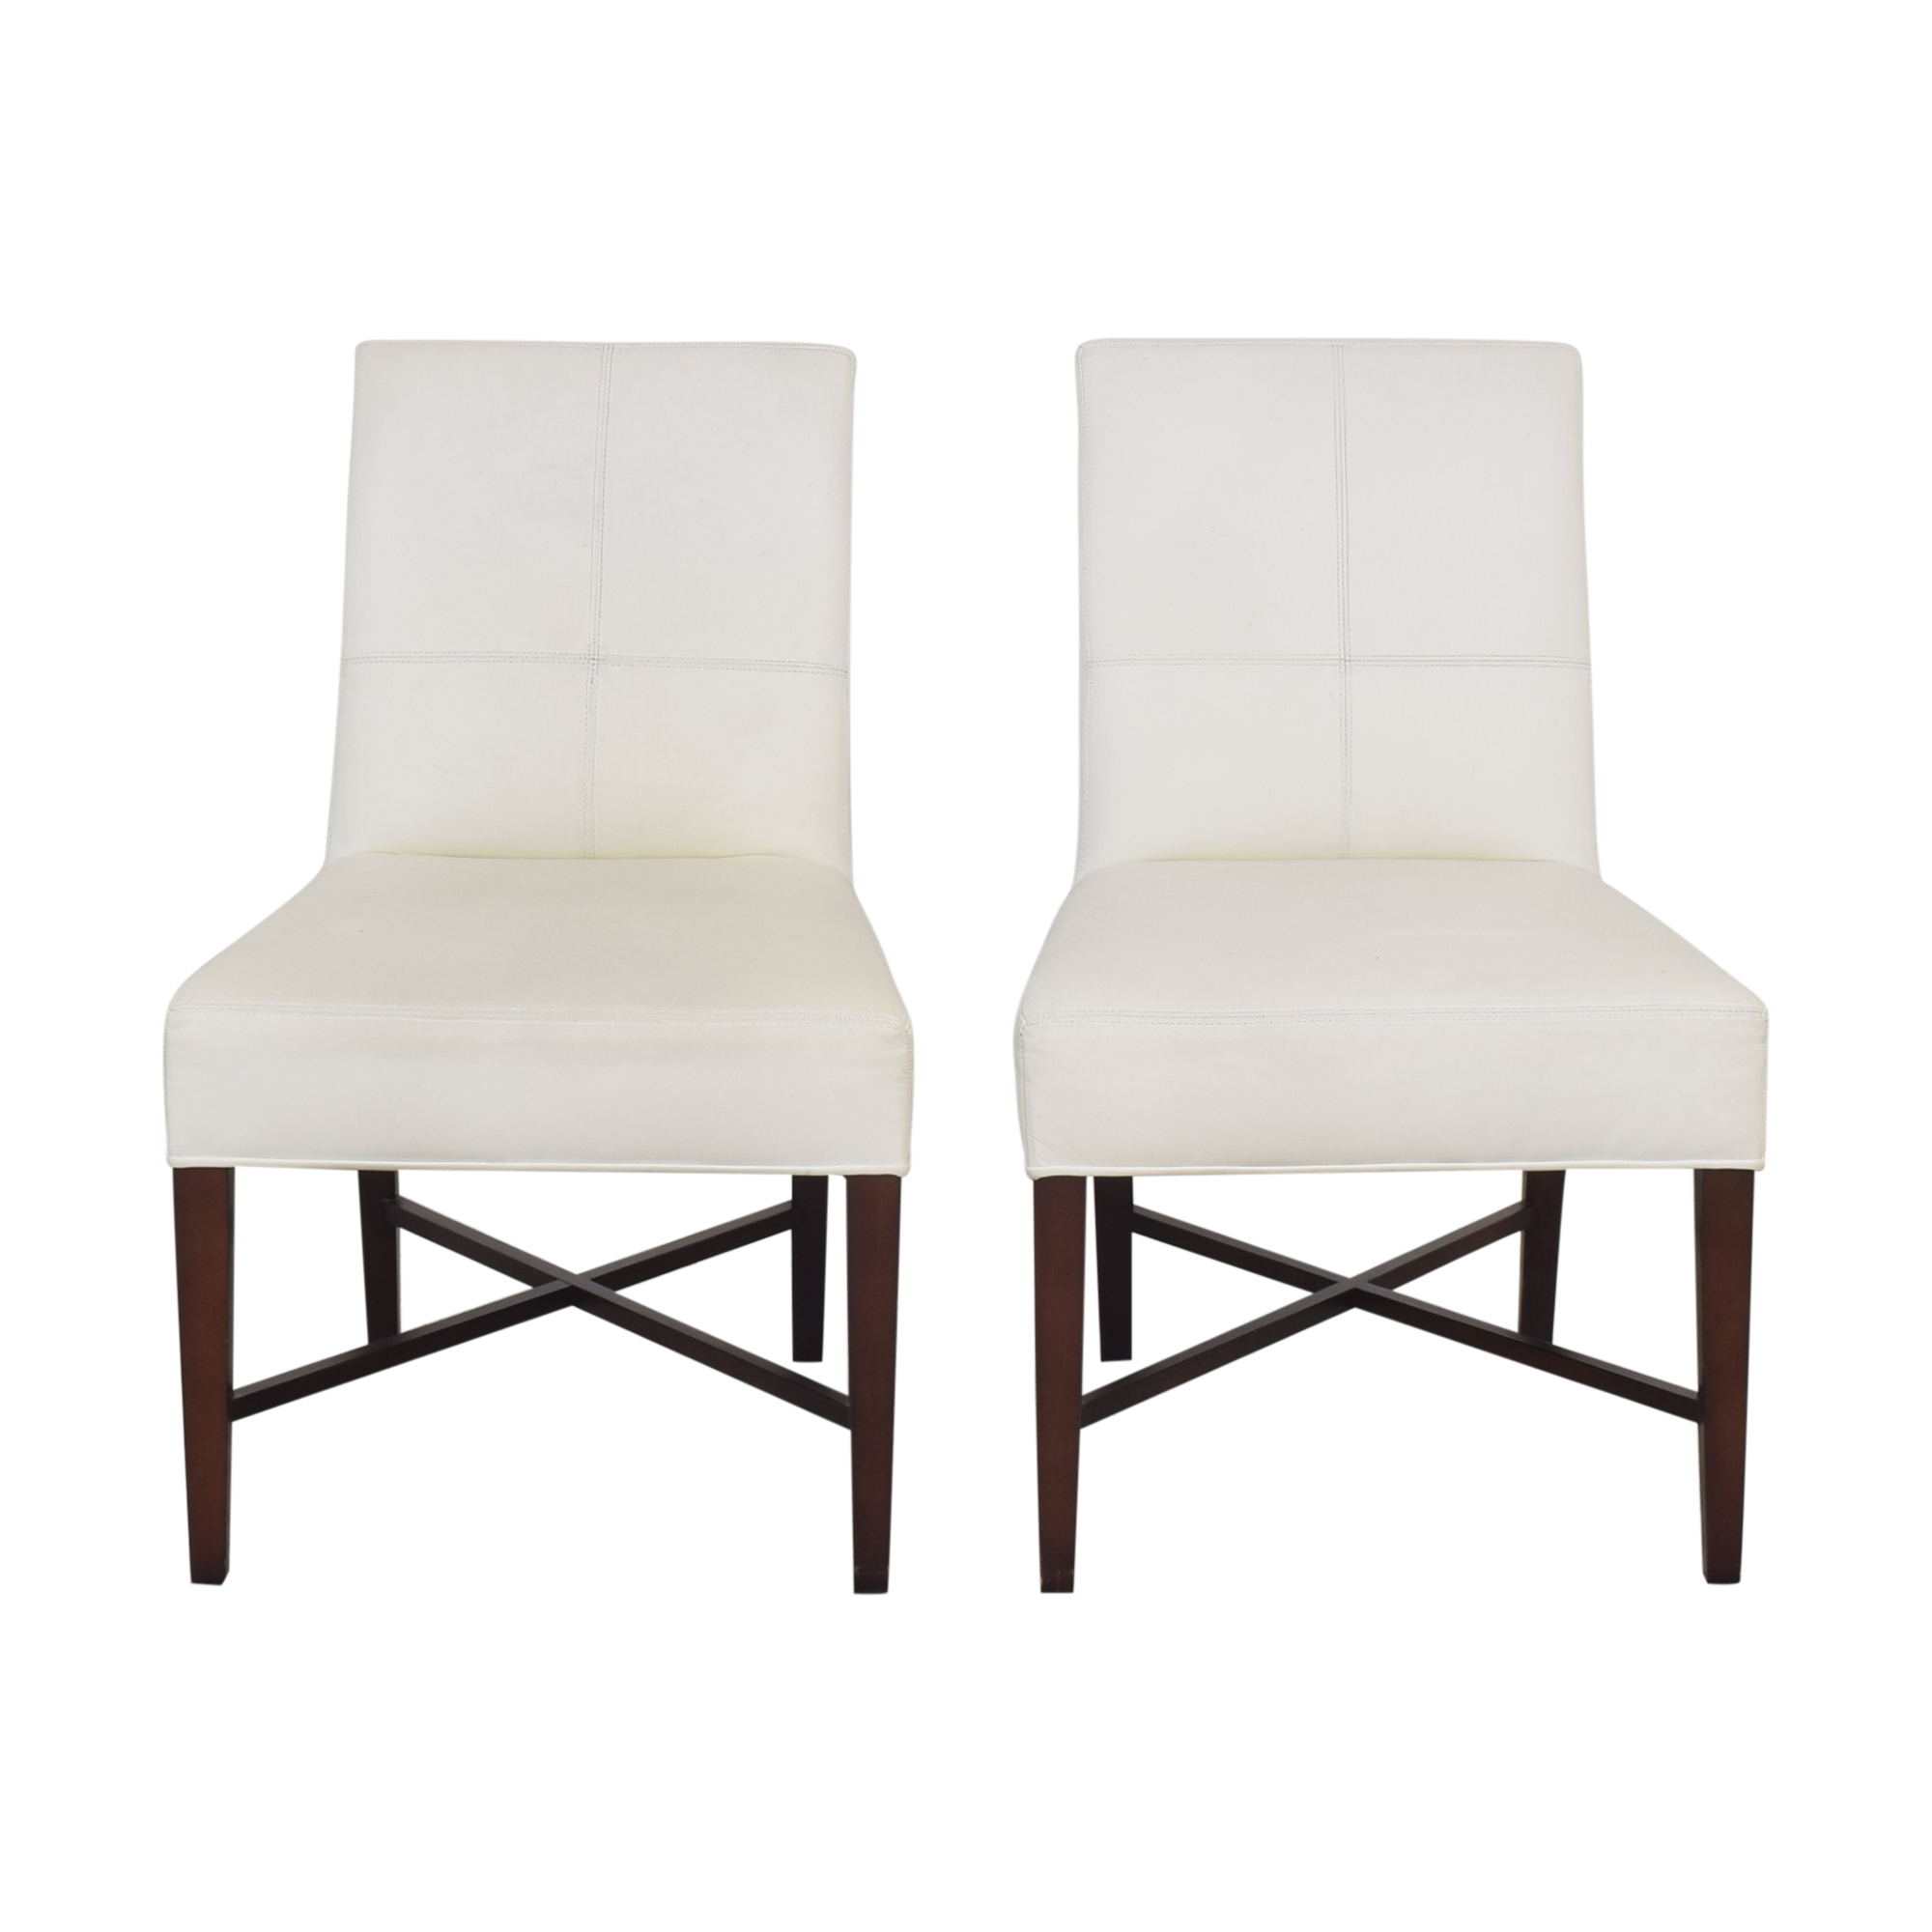 buy Bolier & Company Bolier & Company Snow Upholstered Side Chairs online